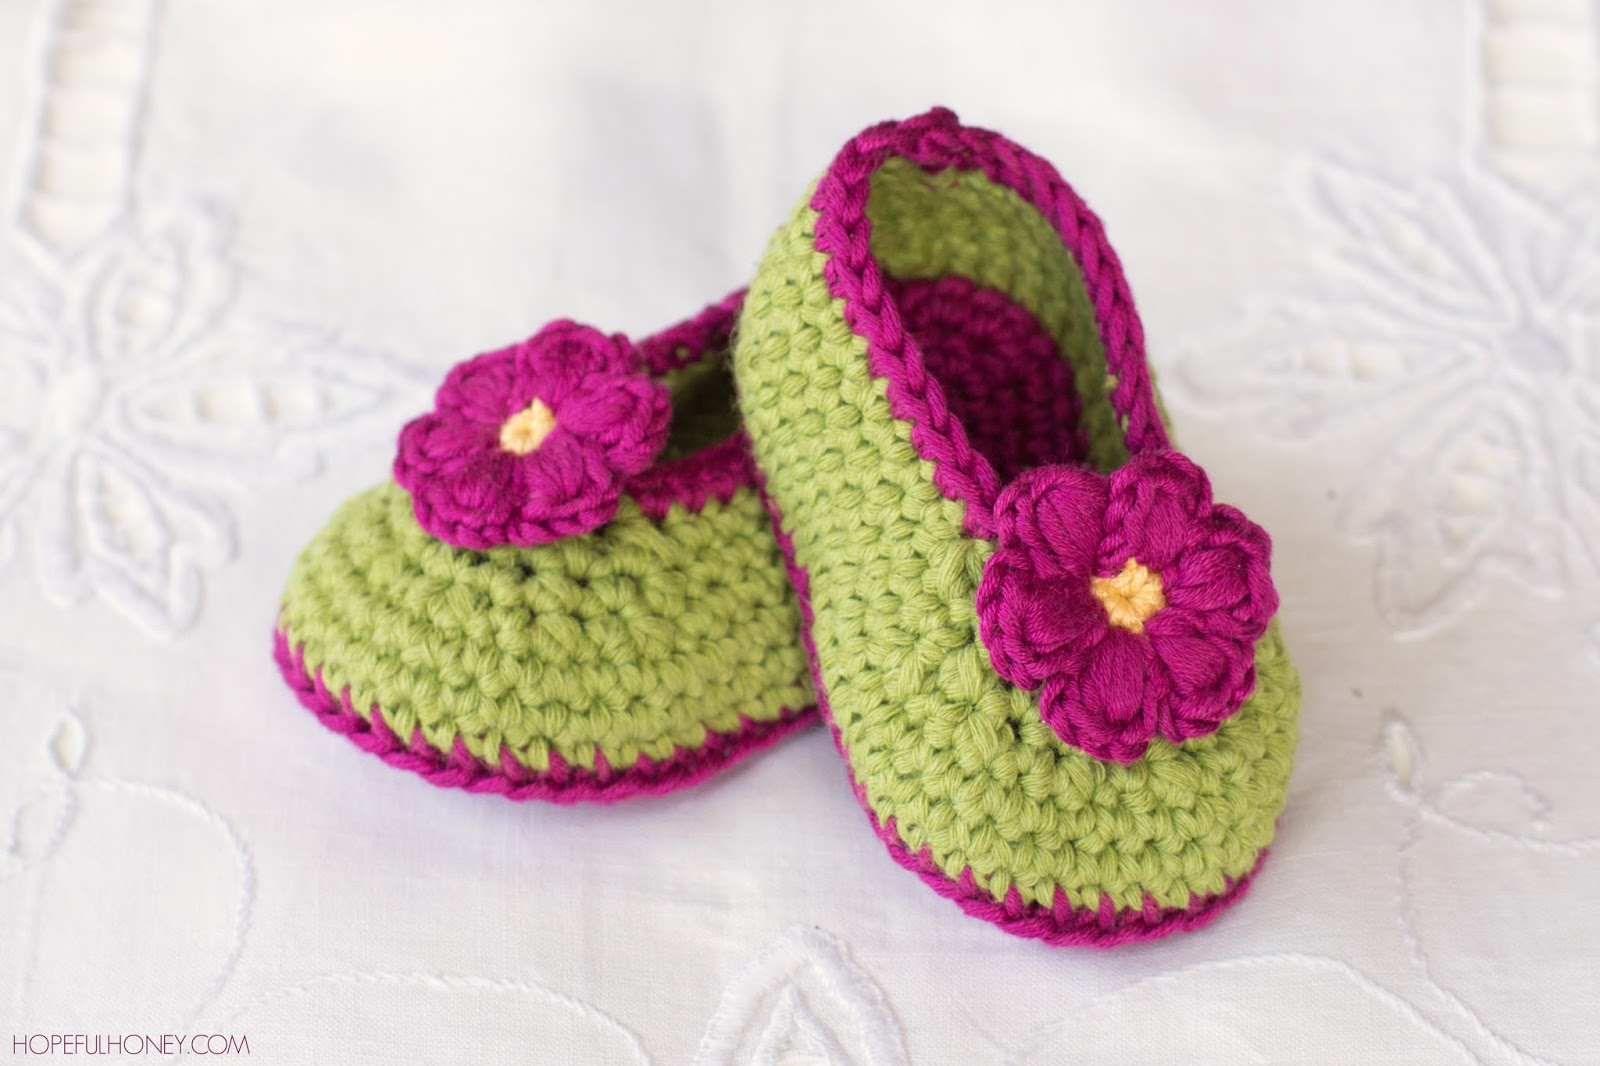 Basic Baby Booties Knitting Pattern Easy To Make Crochet Booties Crochet And Knitting Patterns 2019